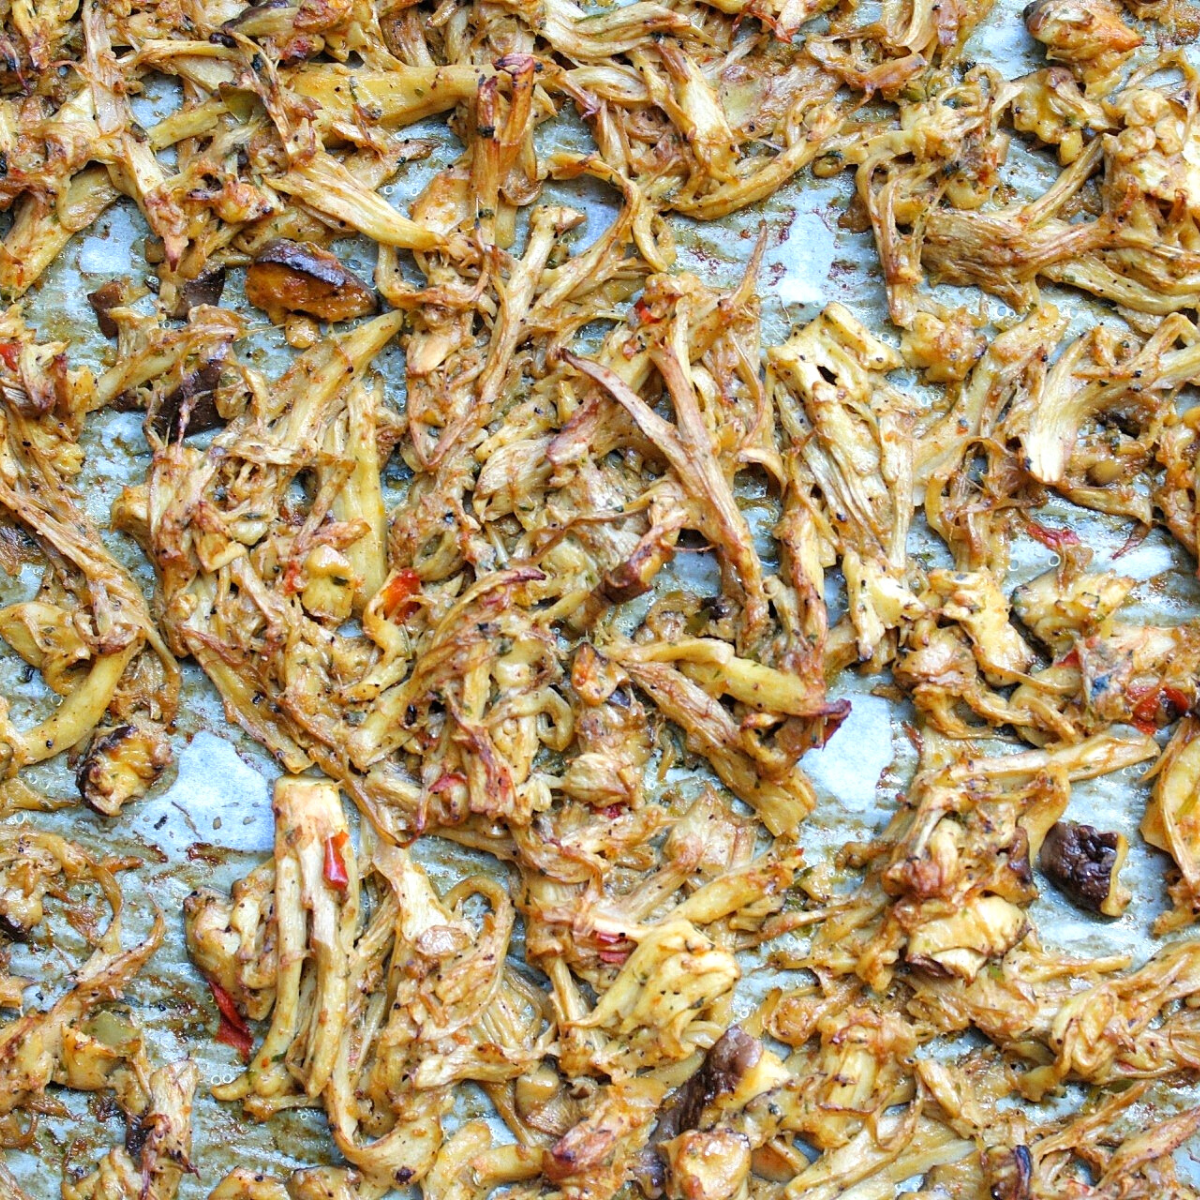 Marinated mushroom shreds on a baking sheet lined with parchment paper.